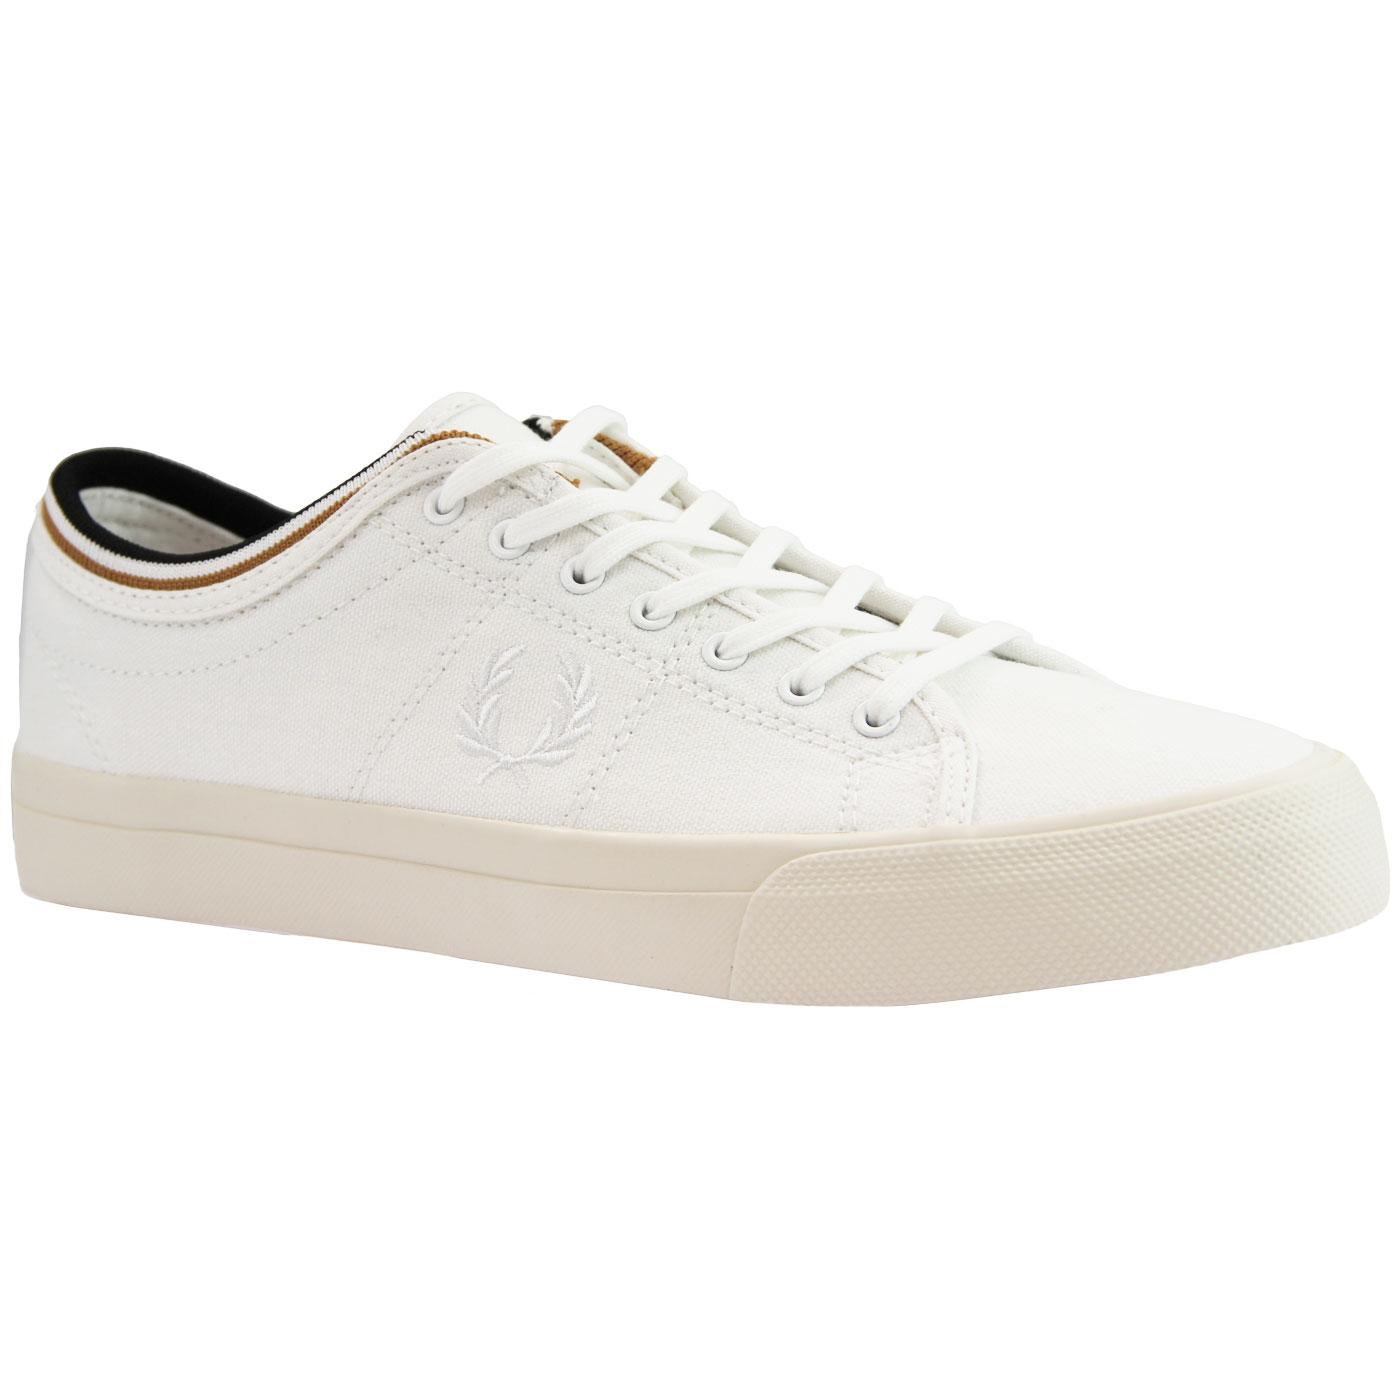 Kendrick FRED PERRY Retro Tipped Canvas Trainers